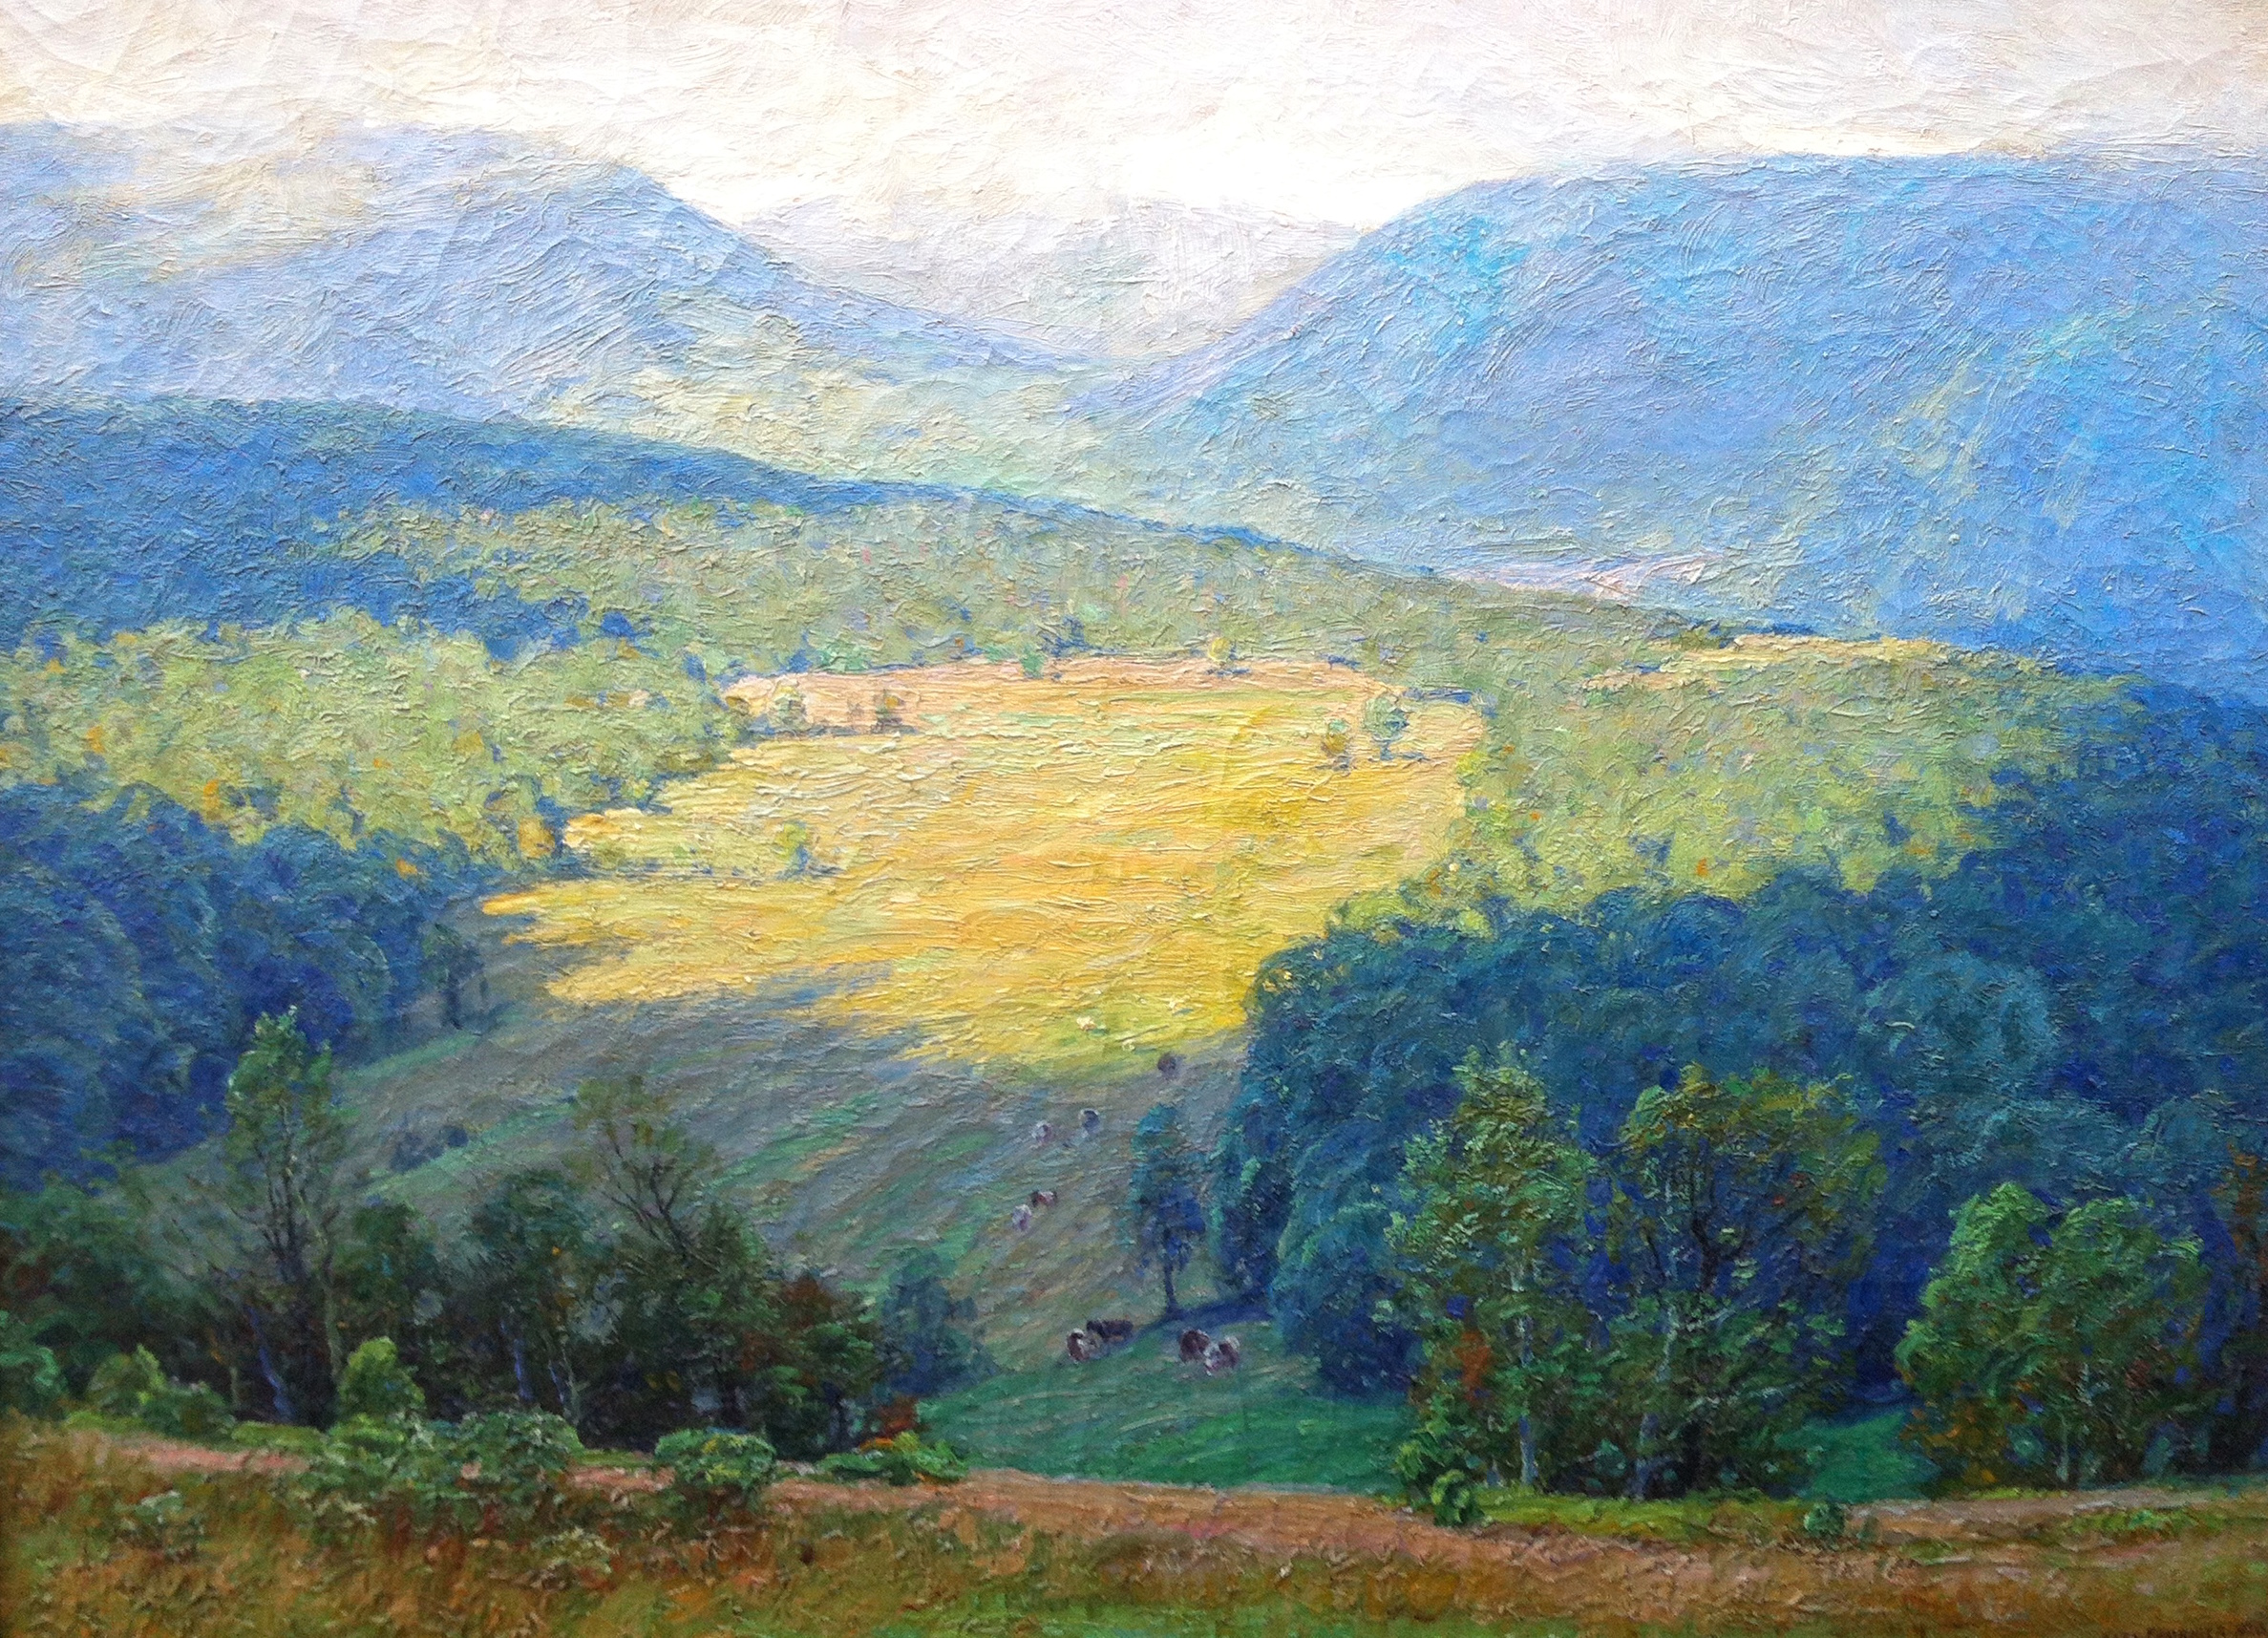 fournier-cloudshadowsinthecatskills-cropped